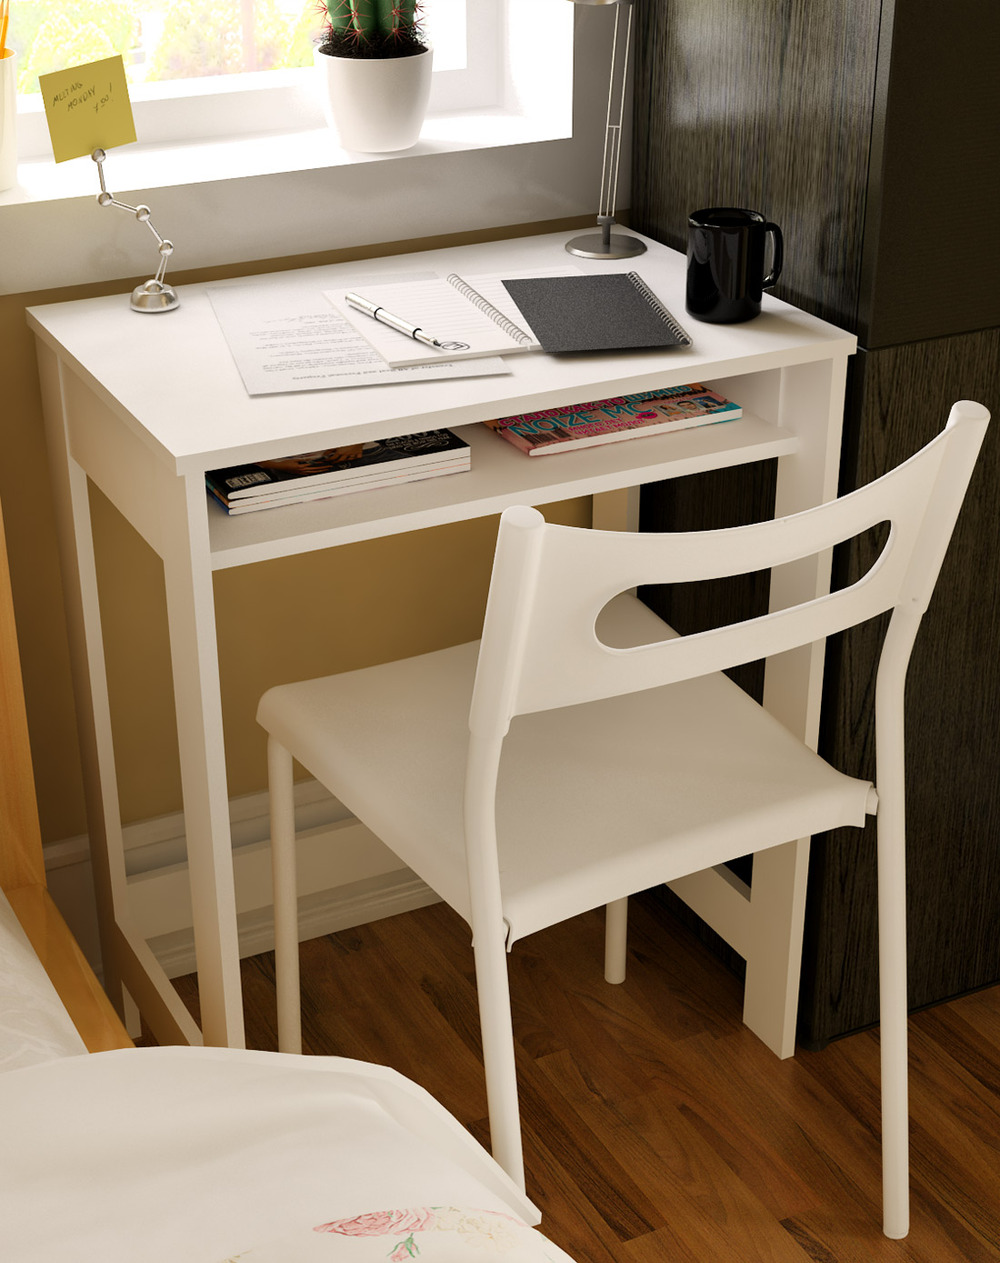 ikea-children-s-creative-minimalist-desk-computer-desk-simple-desk-study-table-a-small-desk-environmental